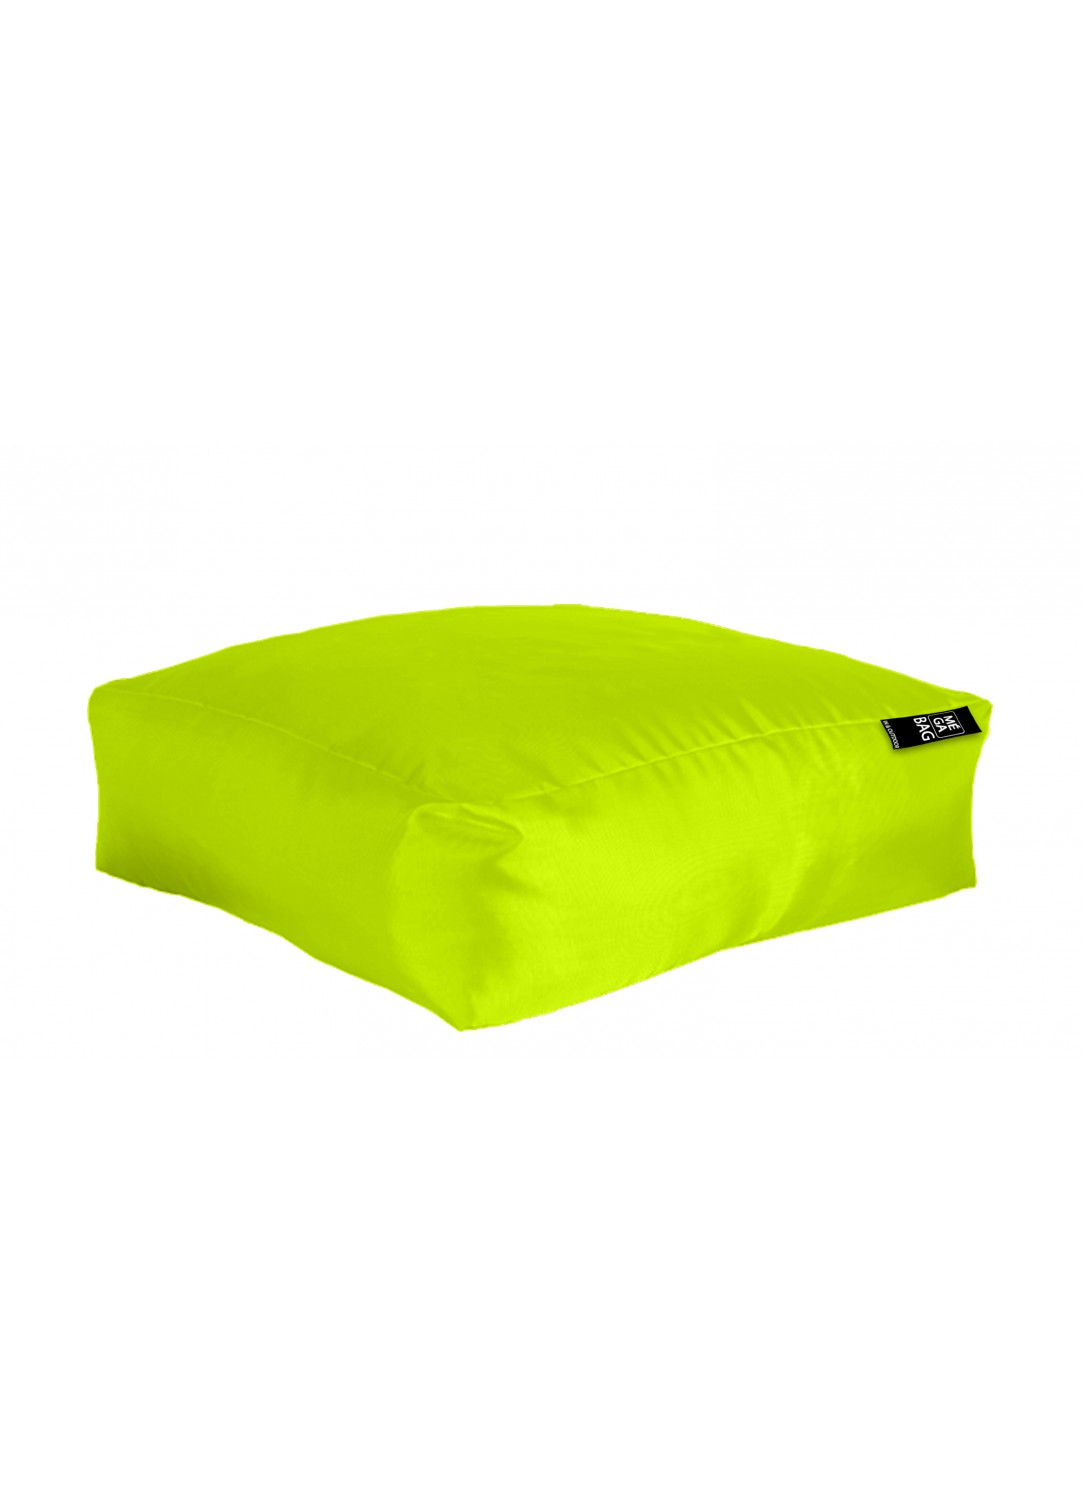 coussin de sol xxl outdoor en microbille vert anis. Black Bedroom Furniture Sets. Home Design Ideas